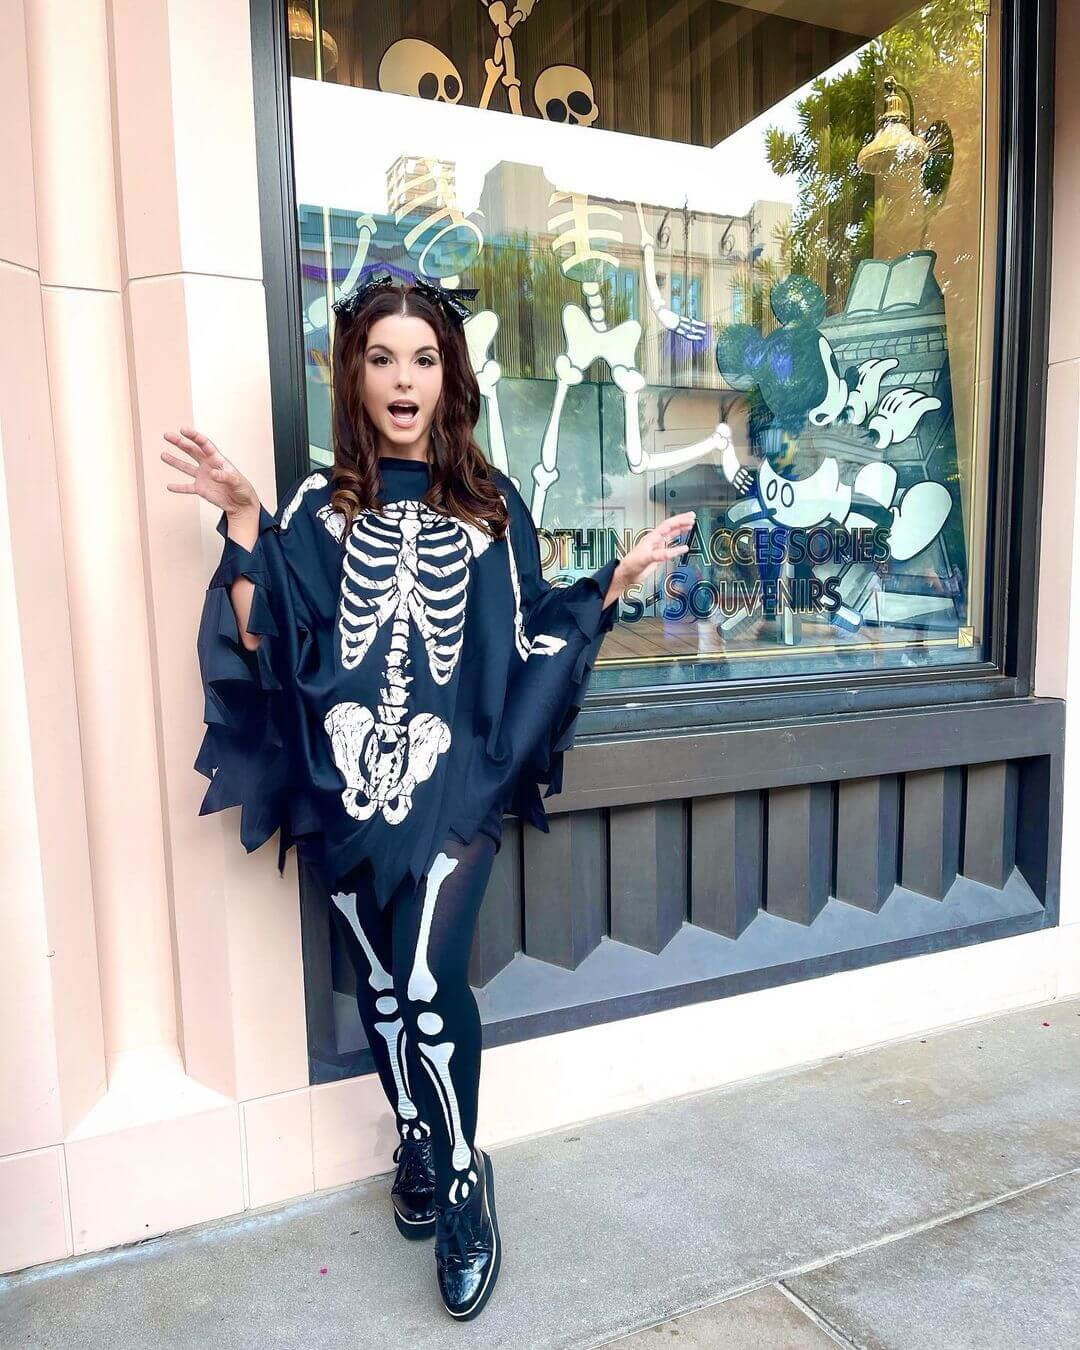 Halloween Costumes for Women Skeleton And Spooky Themed Halloween Costume